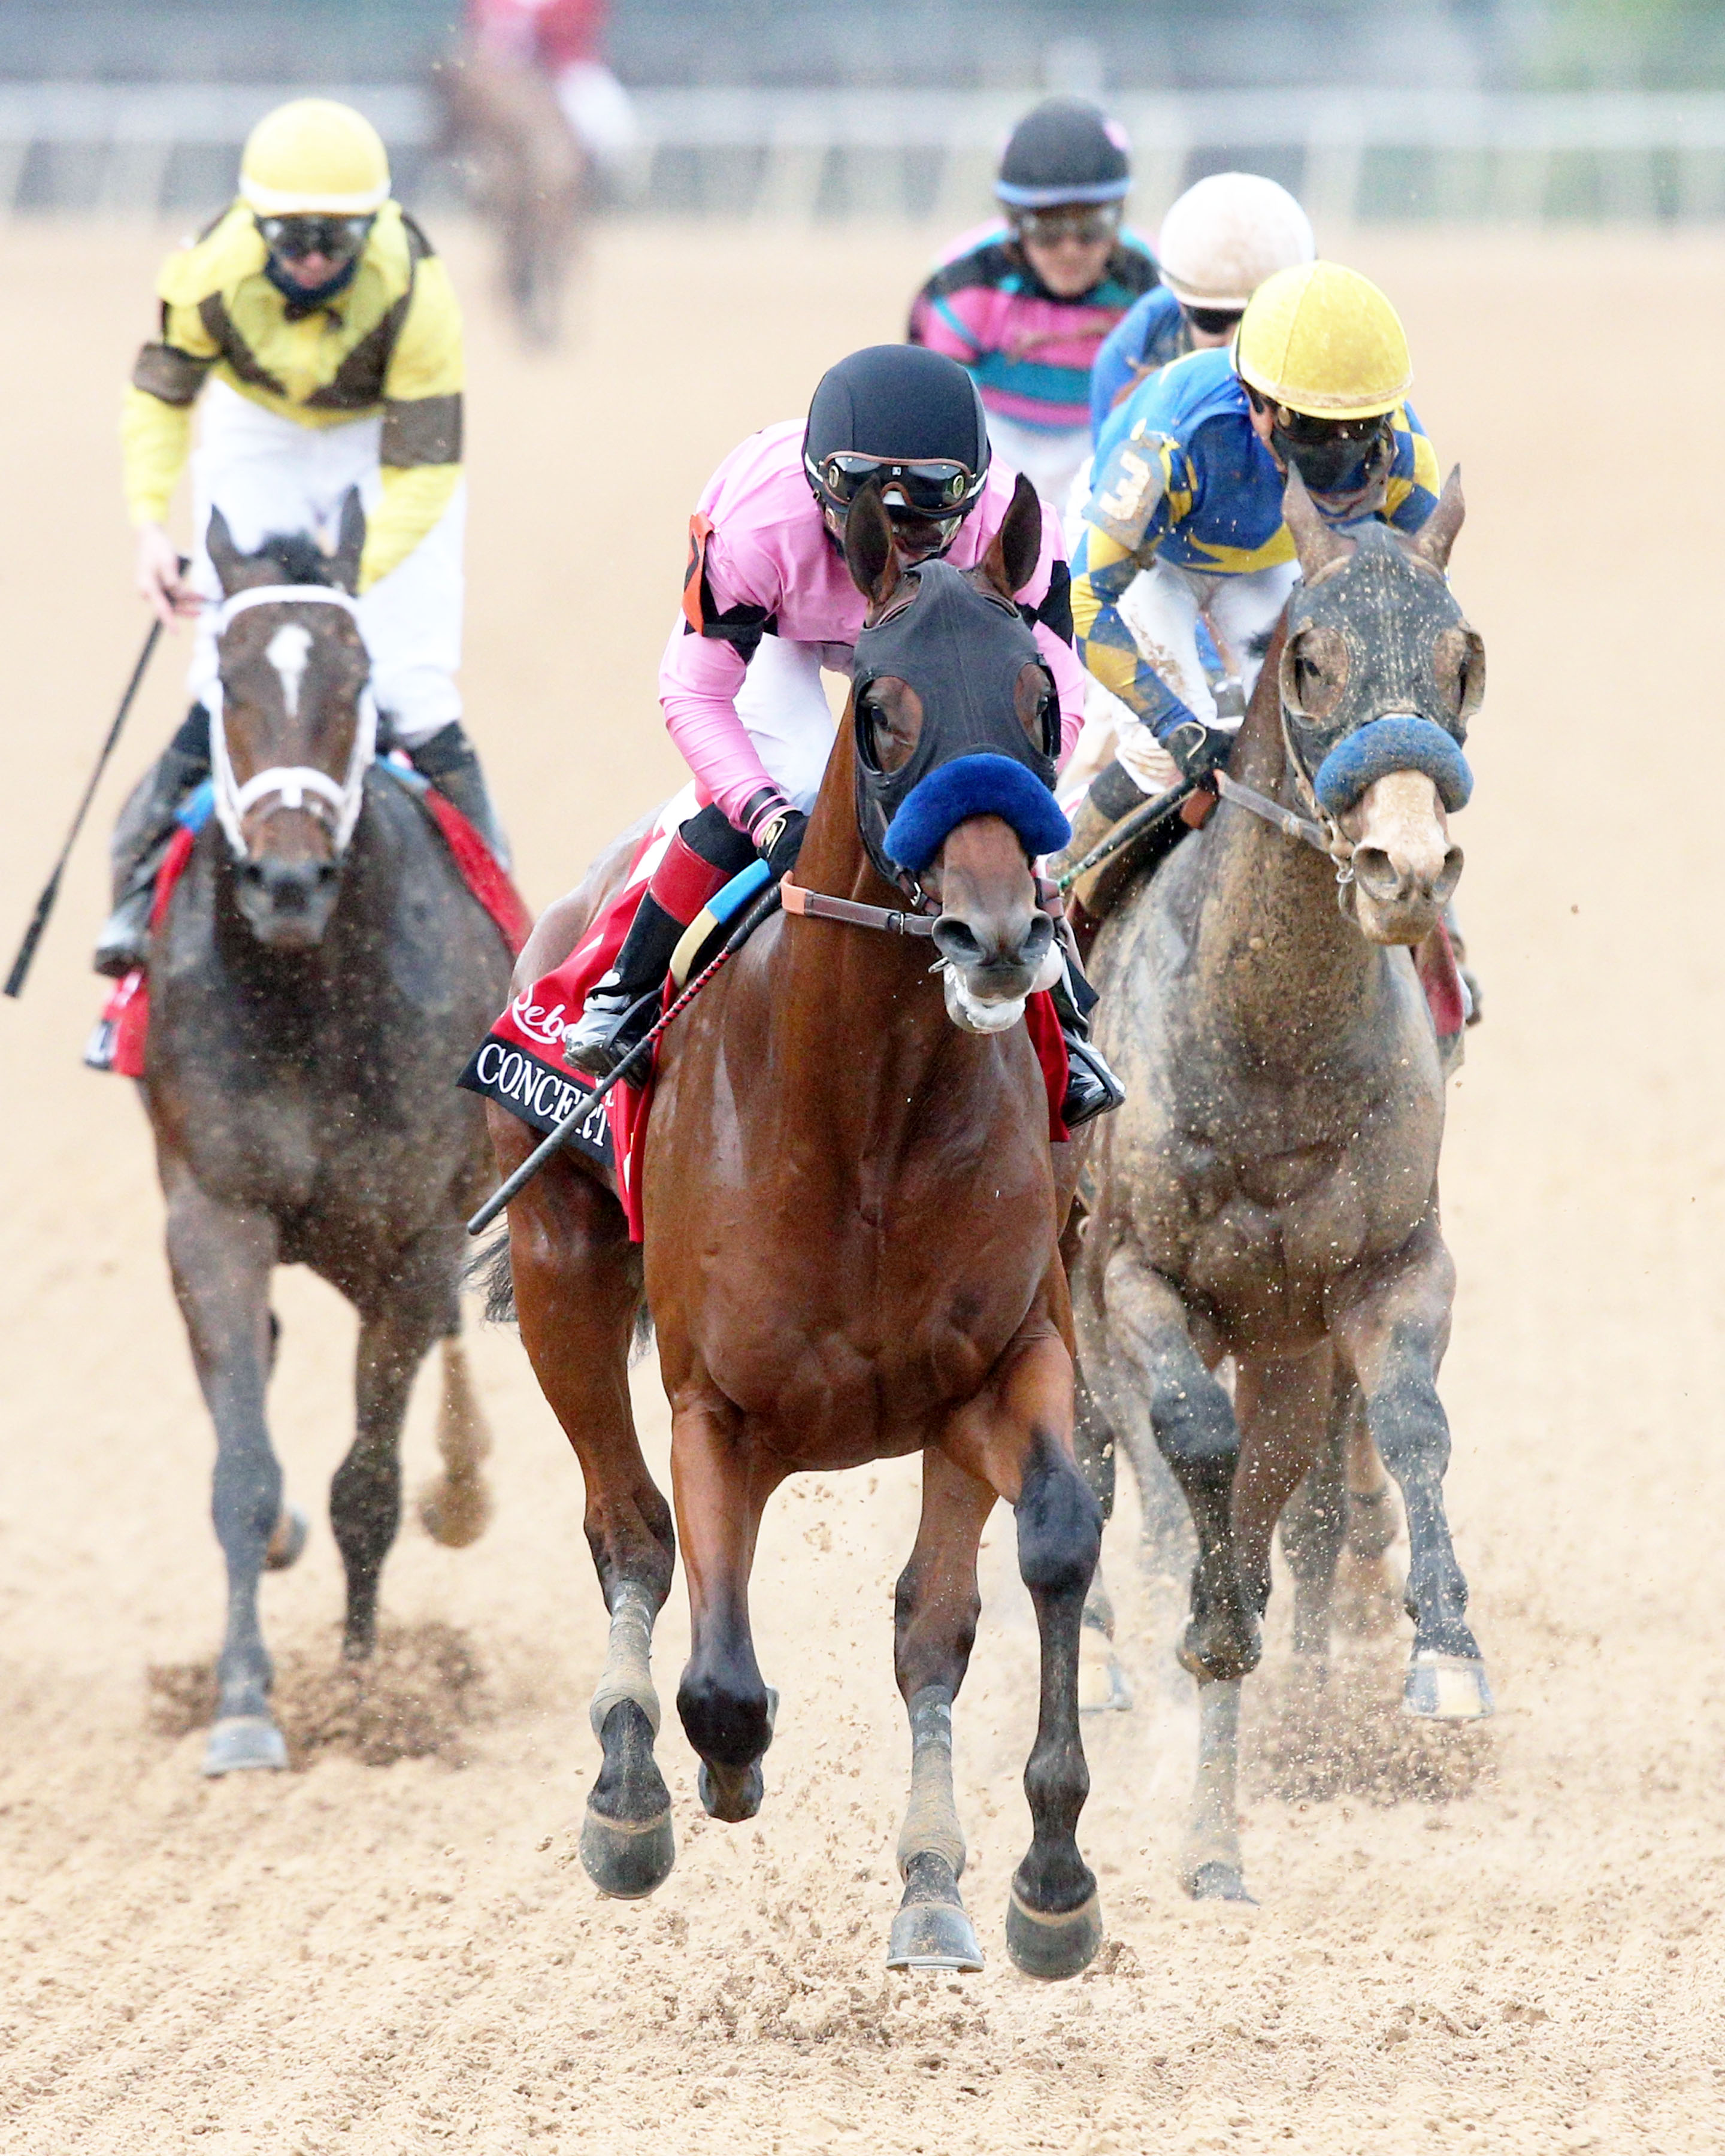 CONCERT TOUR RETURNS FOR ARKANSAS DERBY TRY